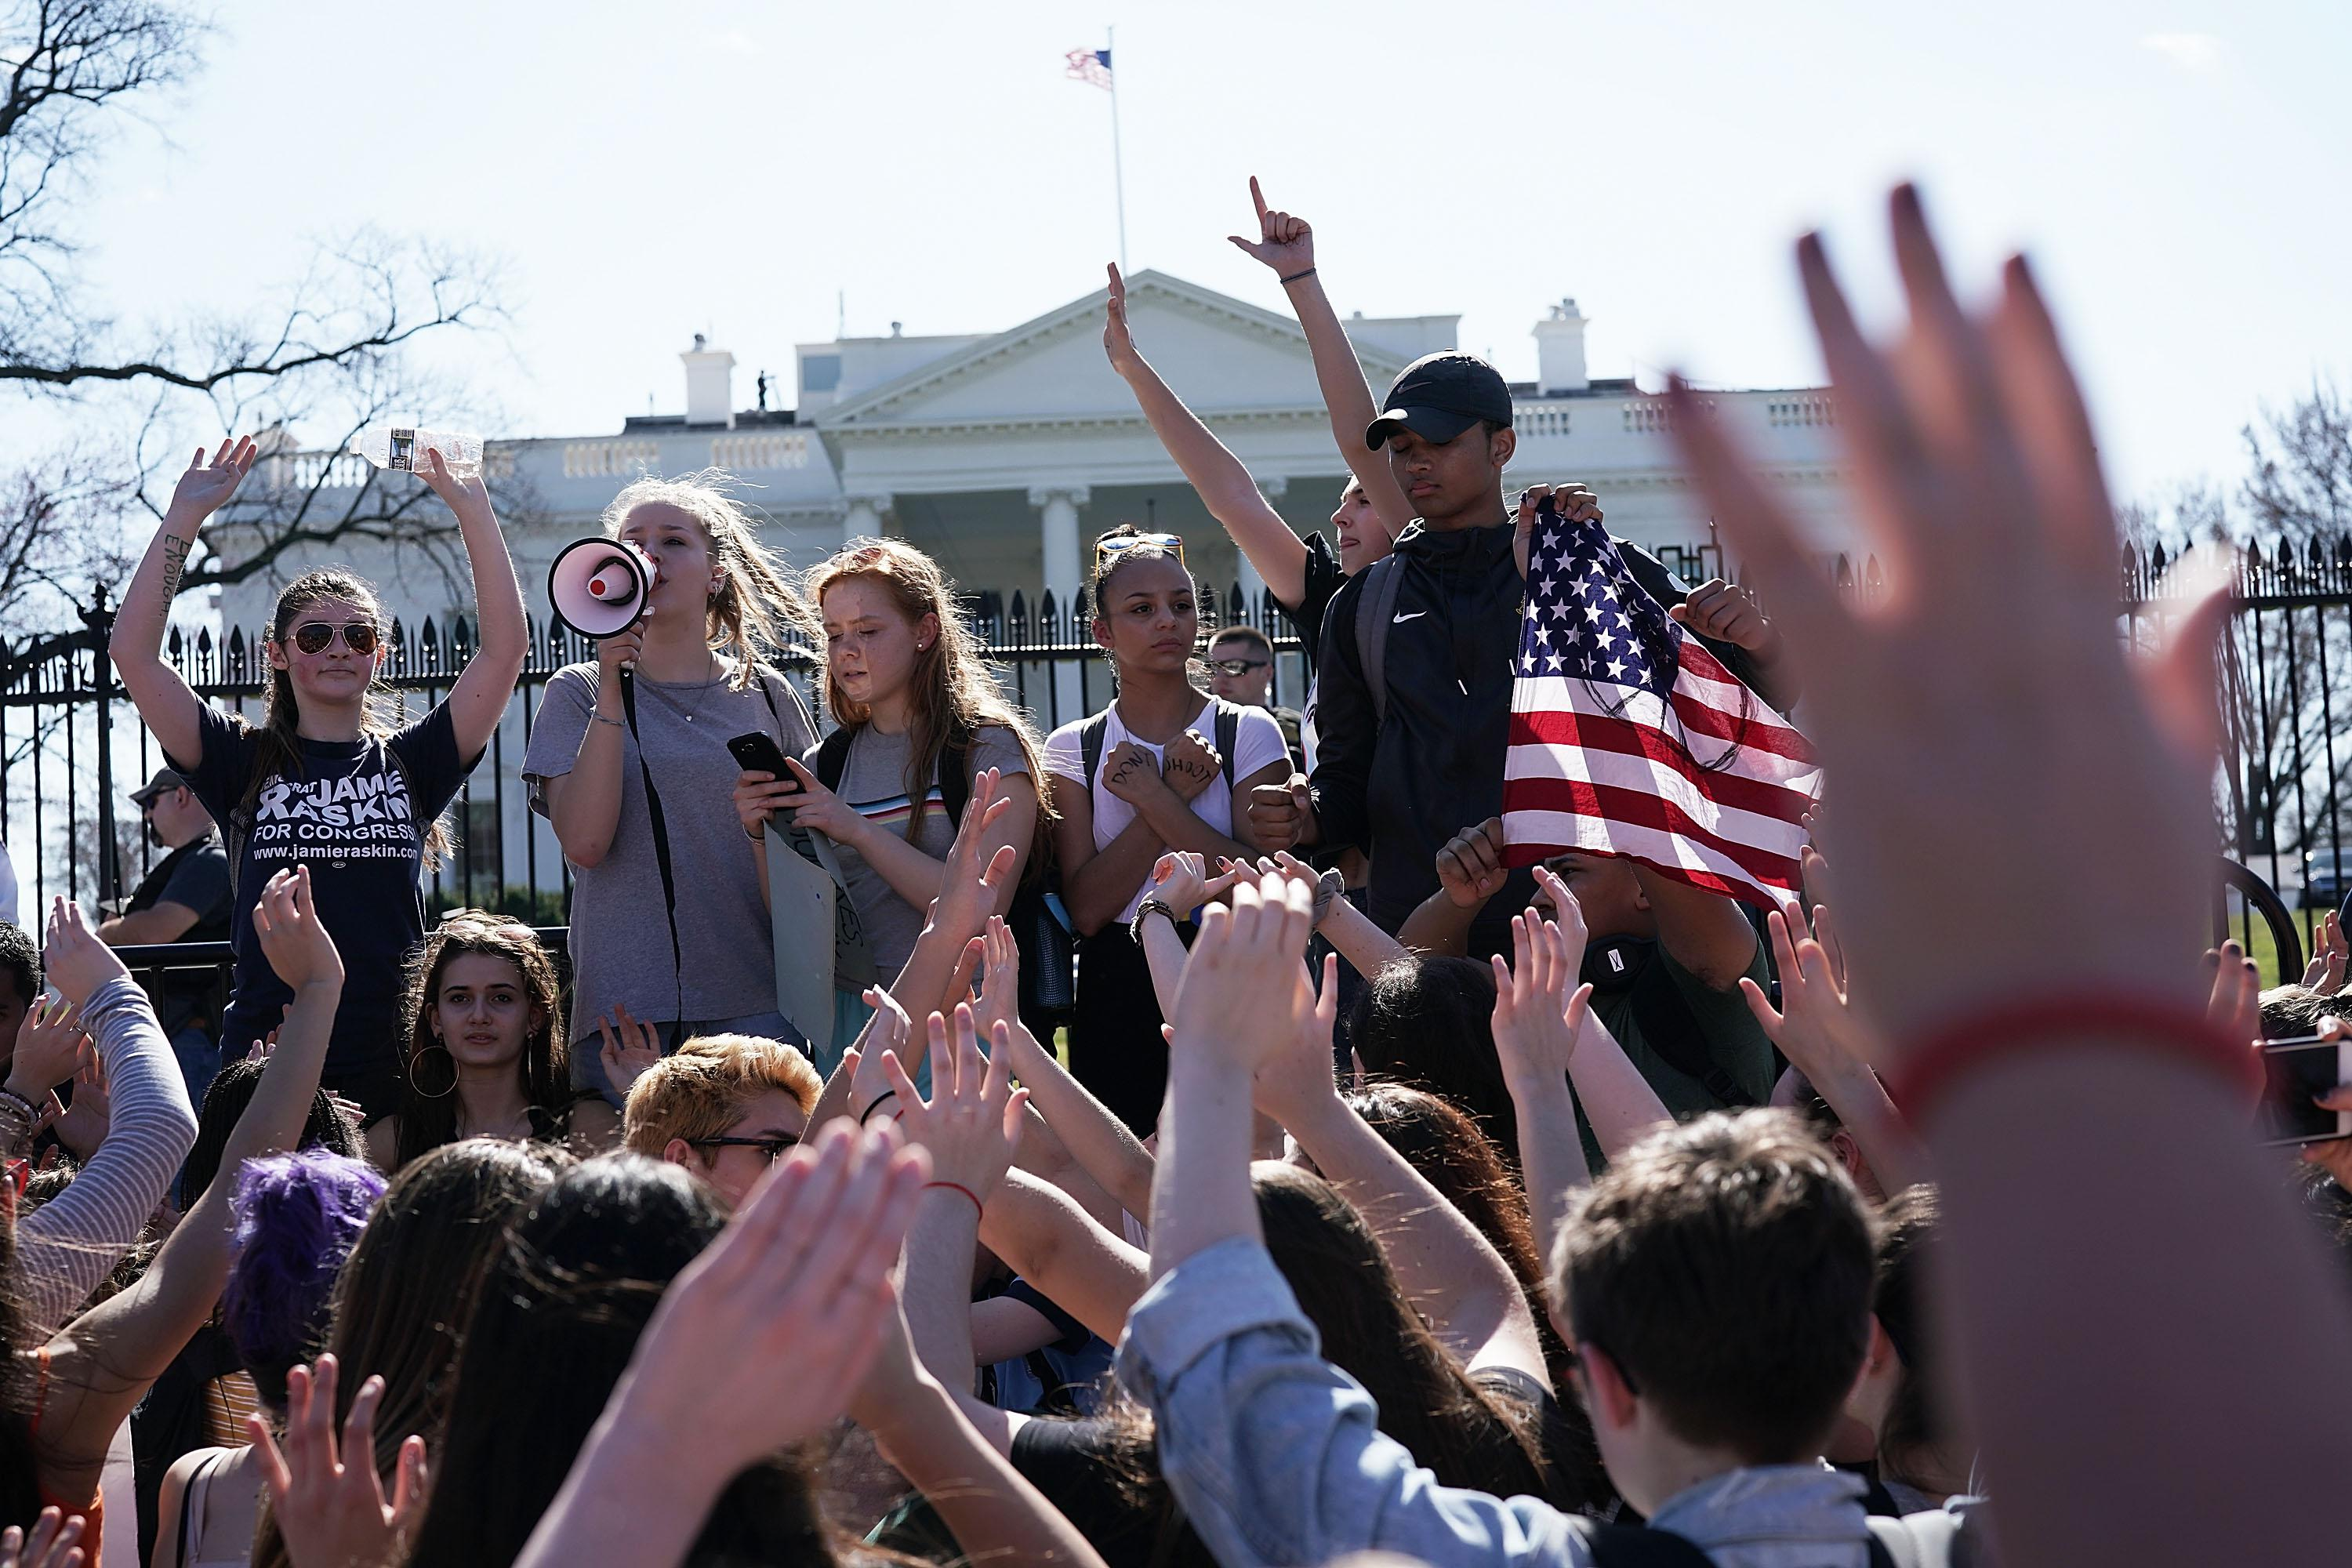 Students protest gun violence outside the White House.